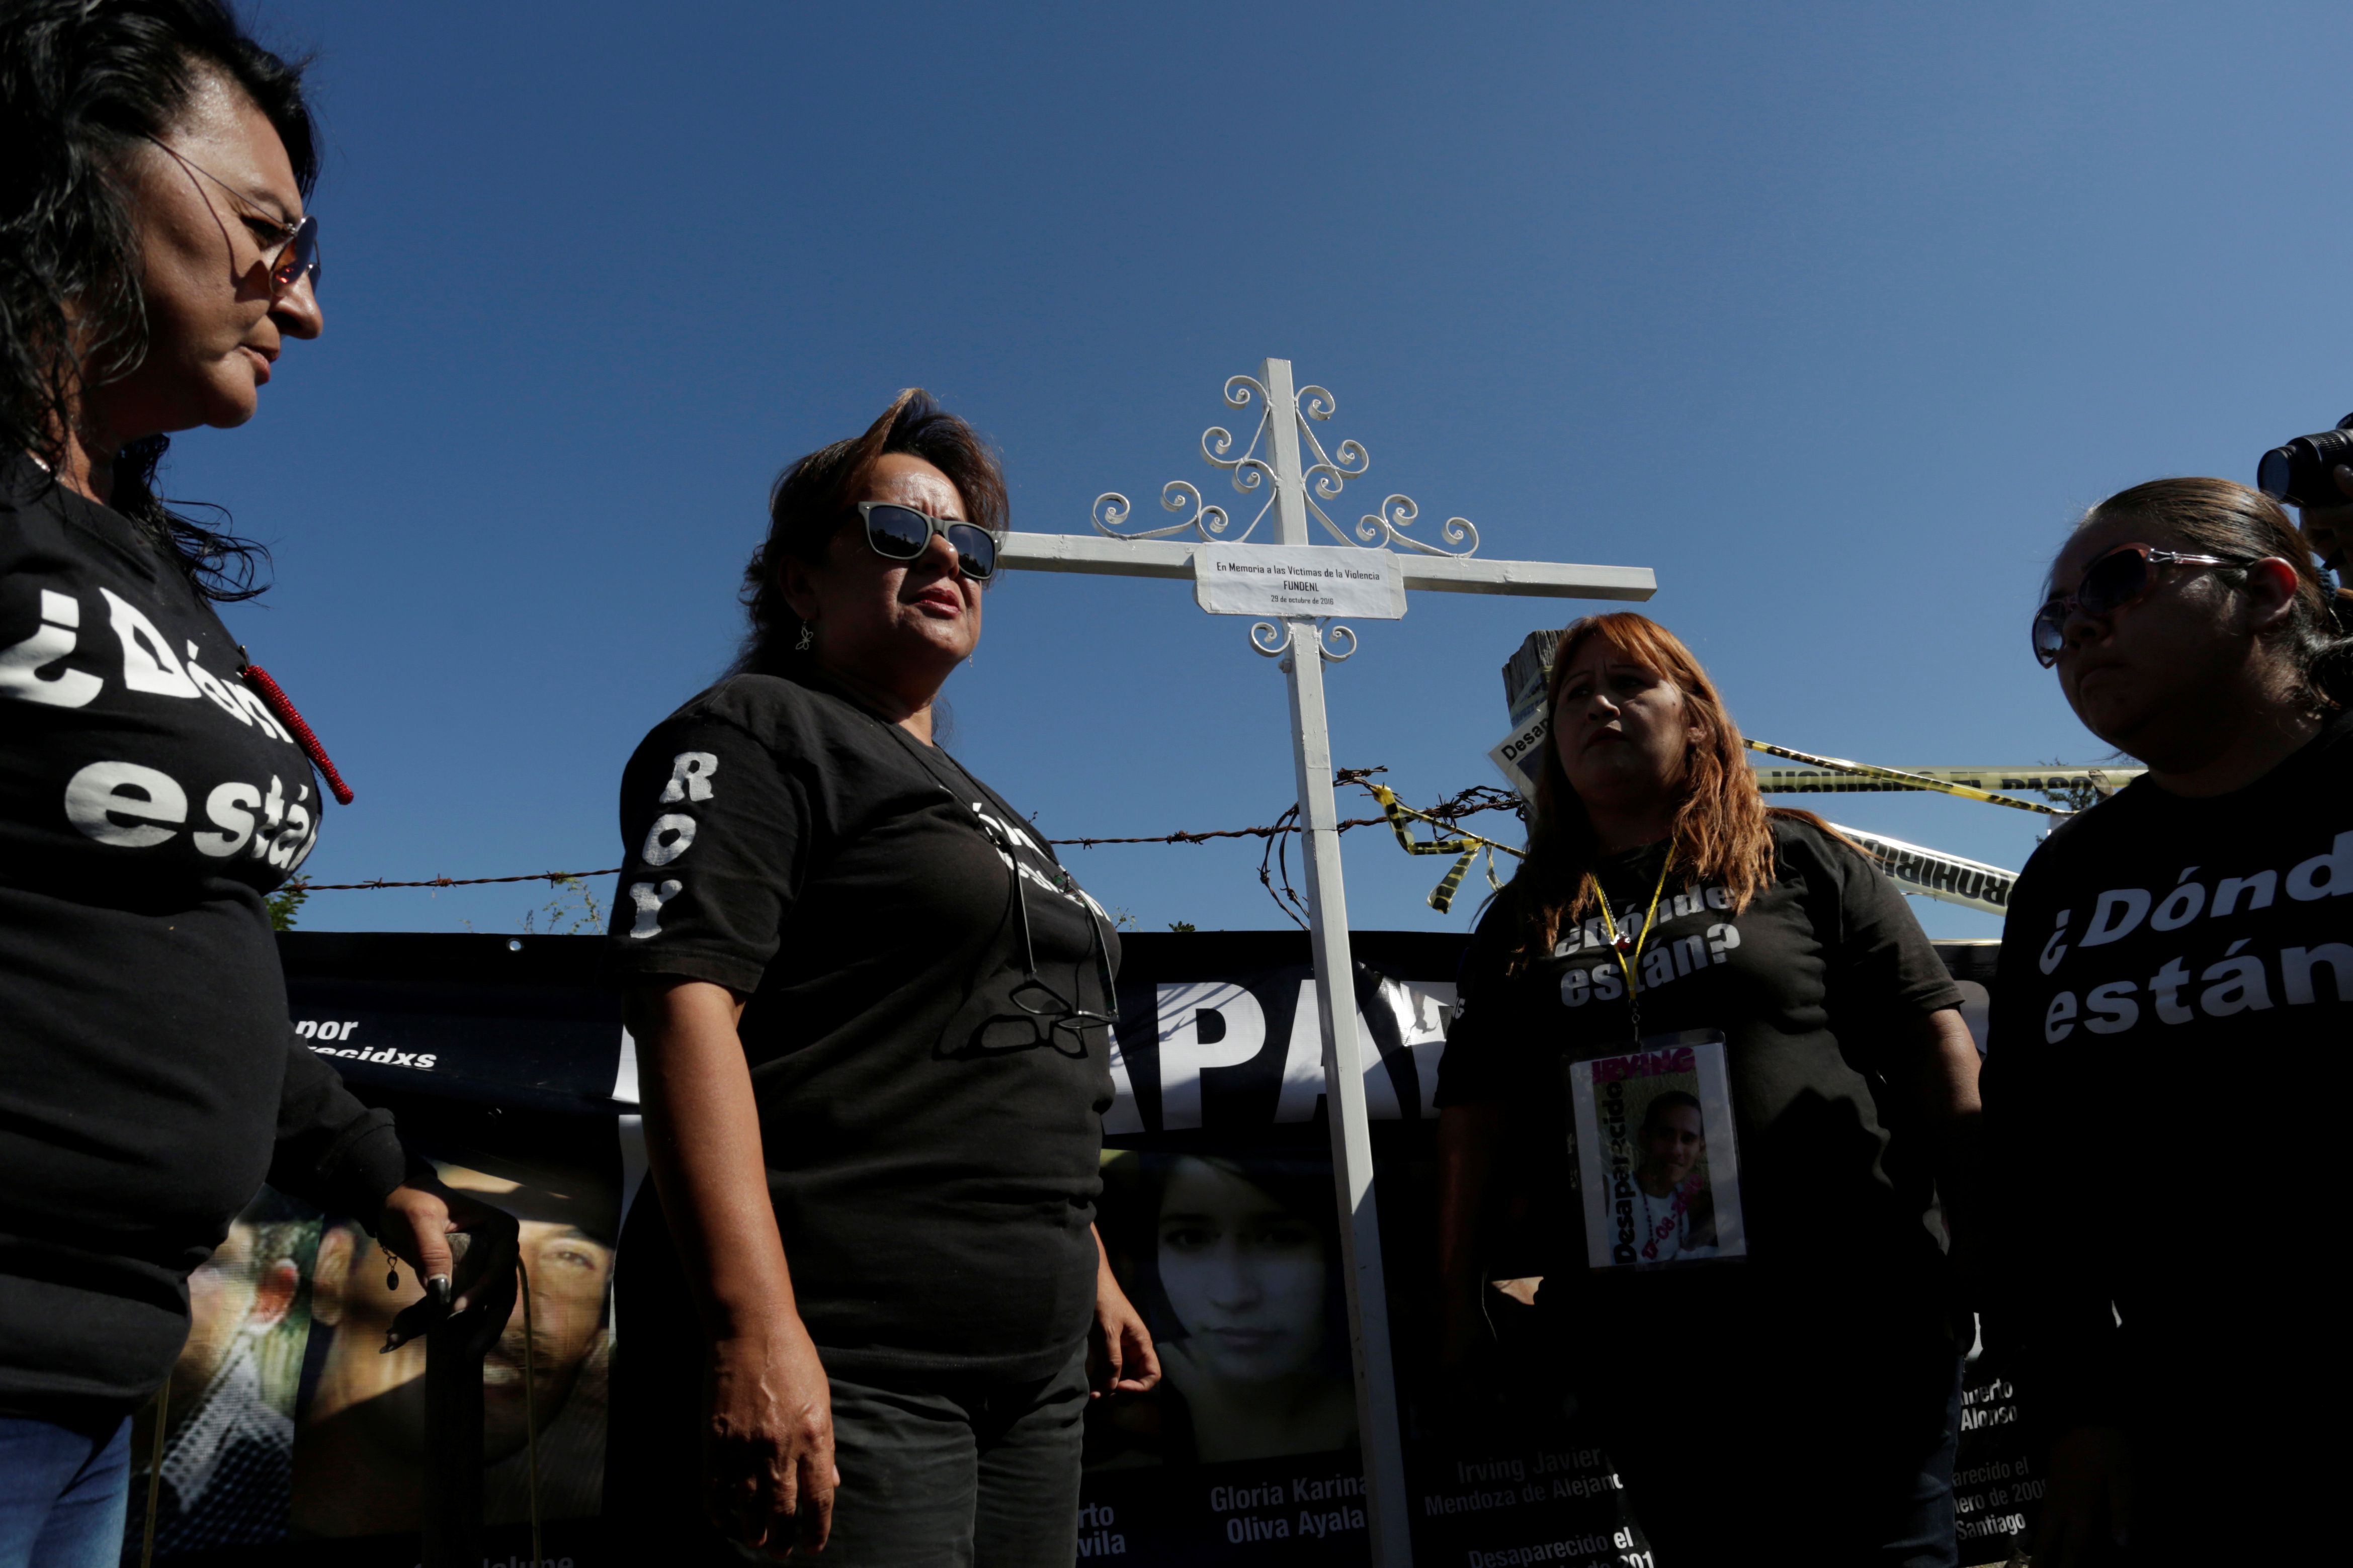 A cross in memory of the missing persons is pictured during a mass with relatives of missing persons at the site where several bodies were found in mass graves in the municipality of Salinas Victoria, Nuevo Leon, Mexico